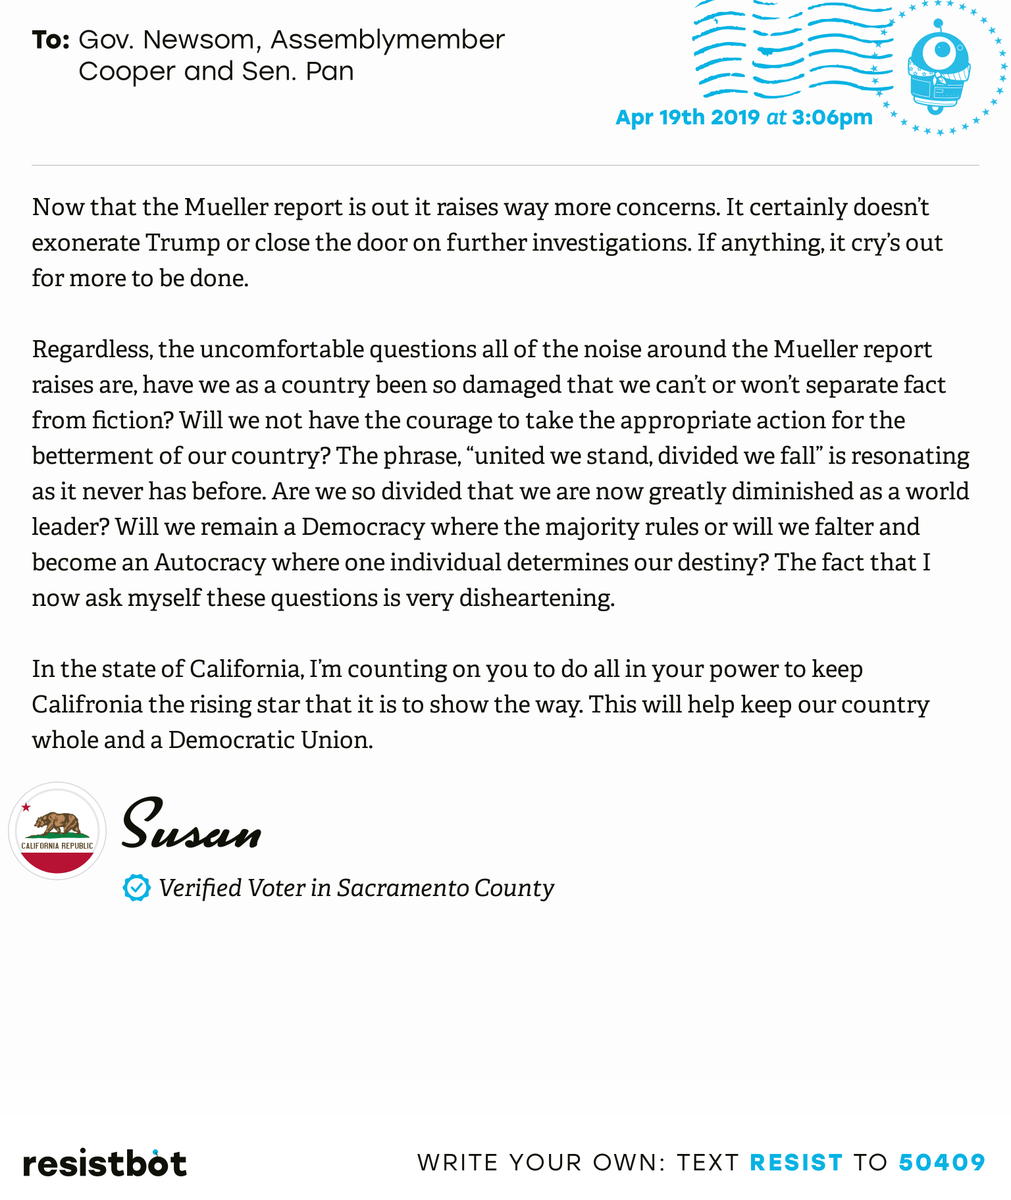 I just delivered this letter from @susanpcooper to @GavinNewsom, Assemblymember Cooper and Senator Pan #capols #capolitics #ReleaseTheReport